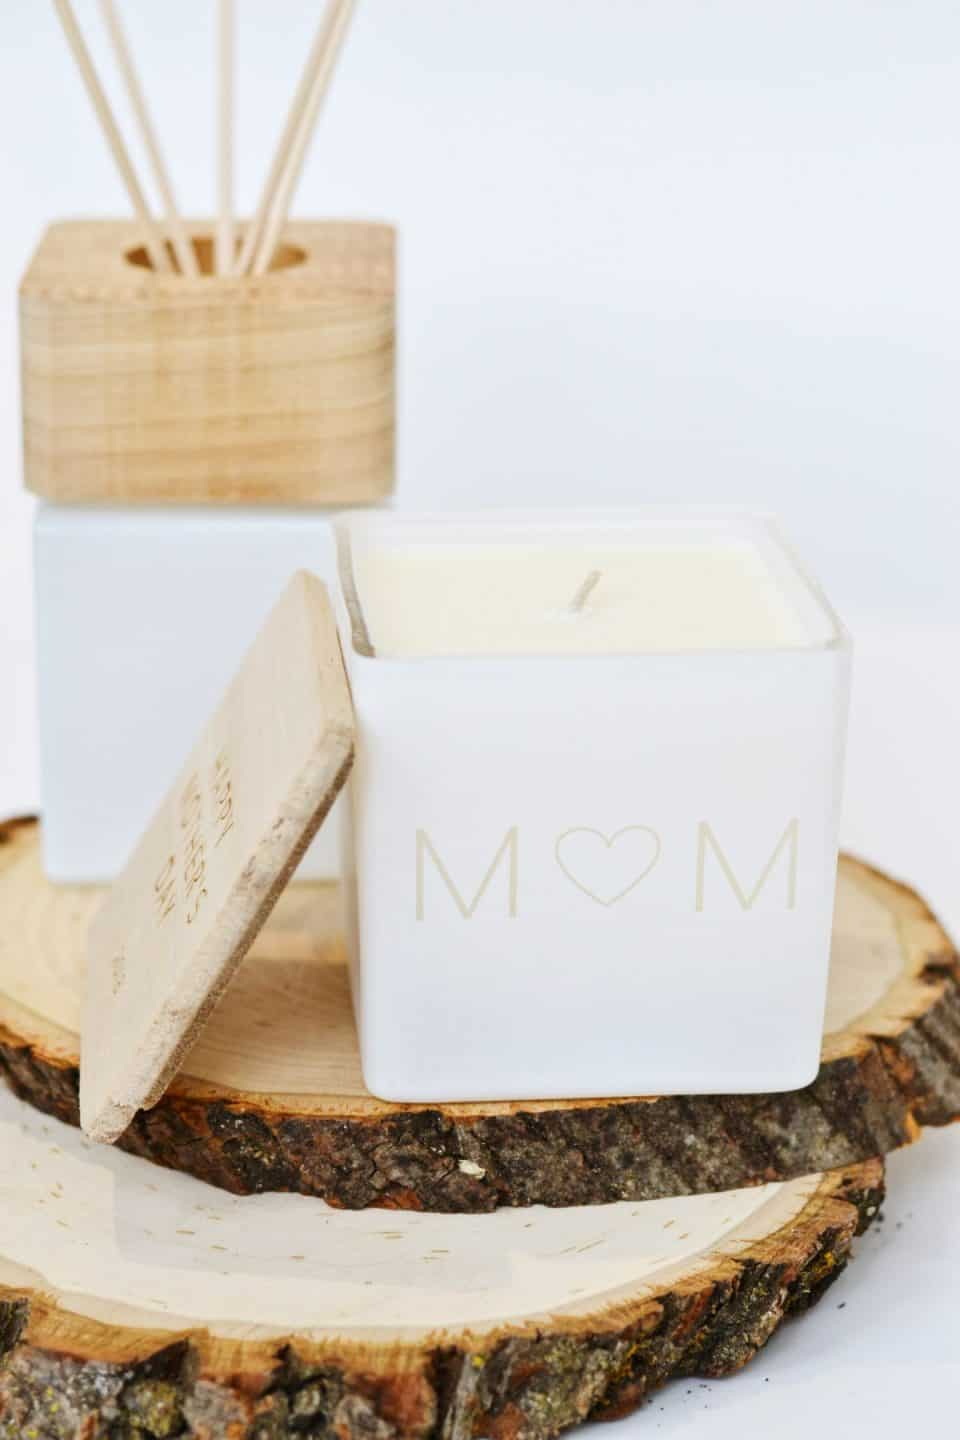 Mother's Day Gifts Ideas from Real Moms 19 Daily Mom Parents Portal